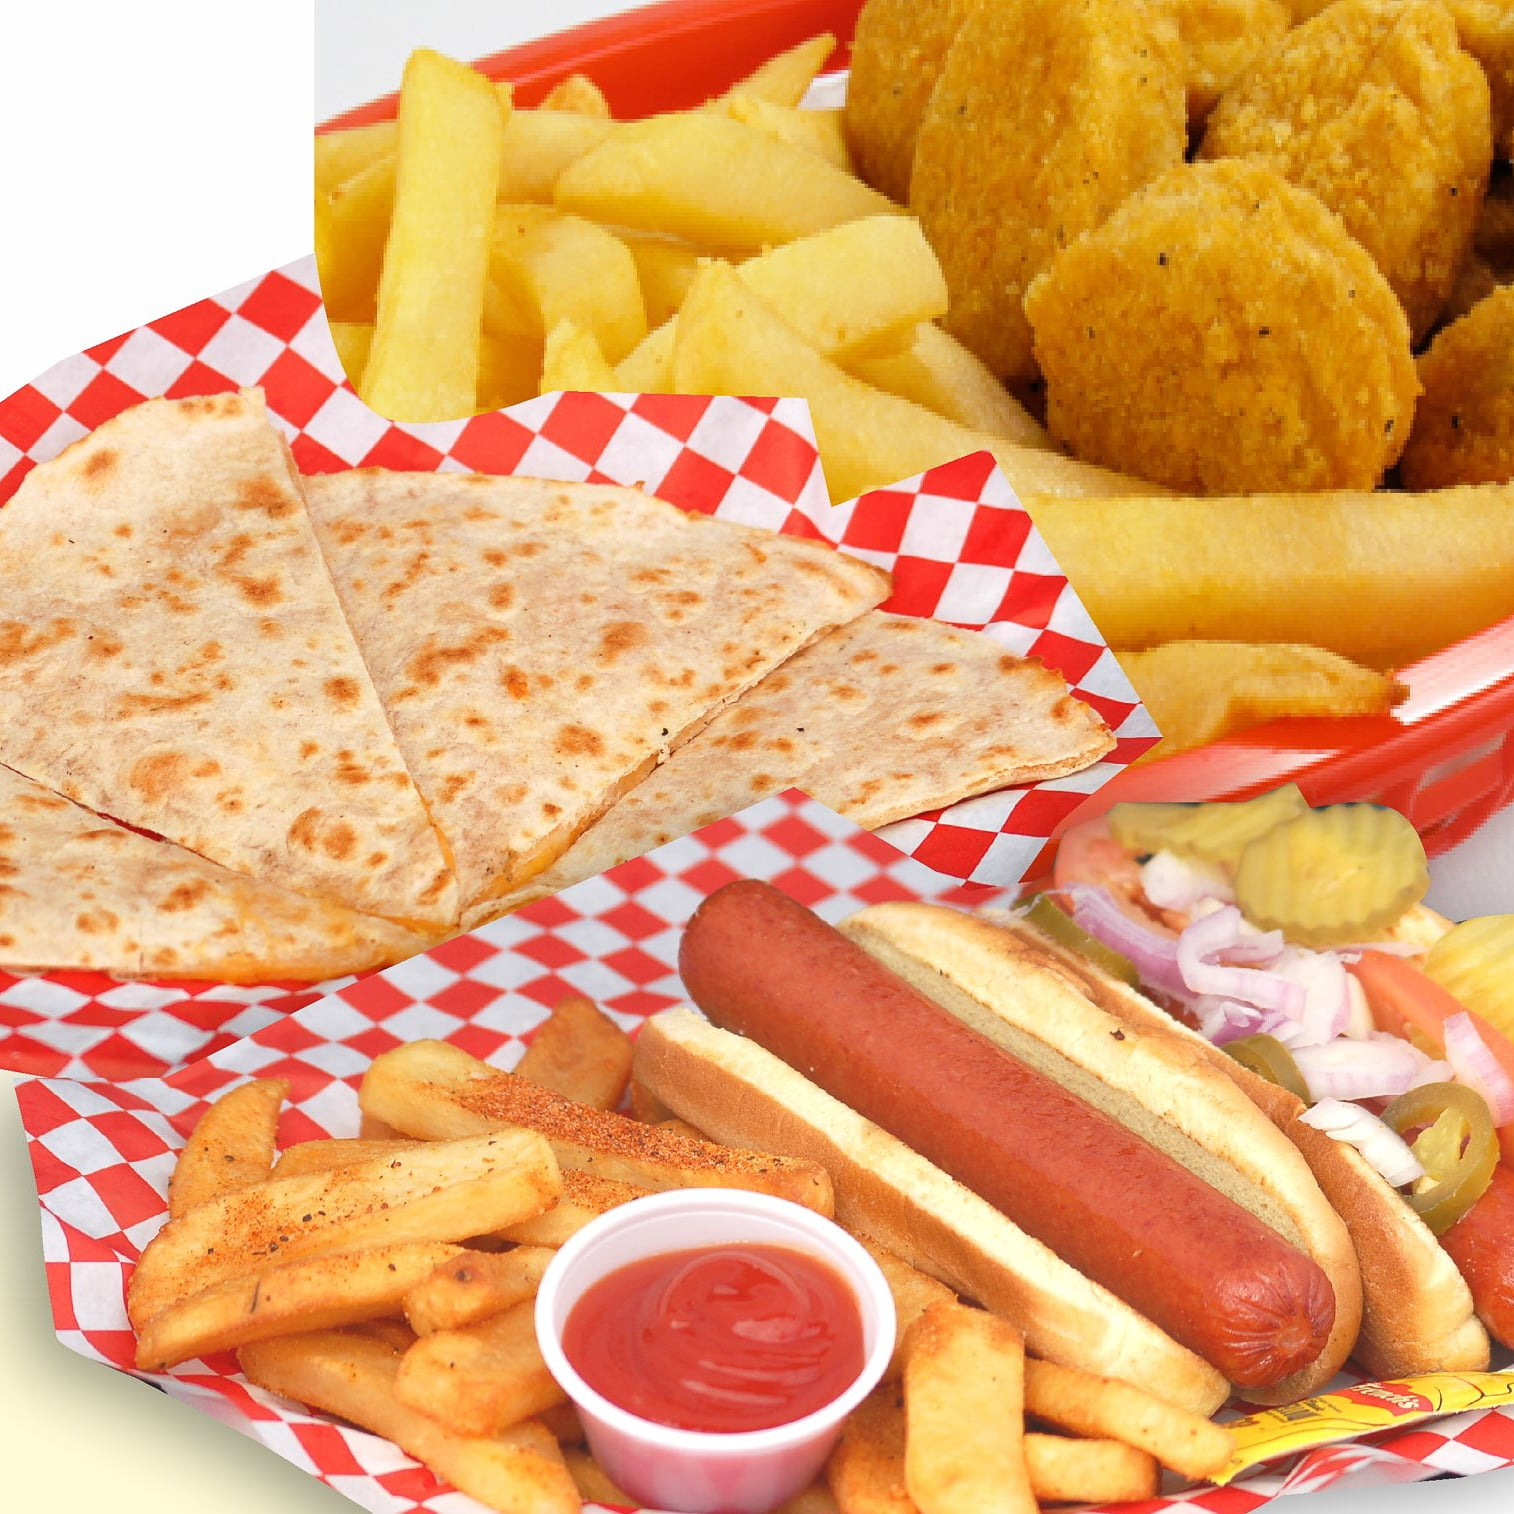 Cheese quesadilla, hot dog combo, and chicken nuggets servied with fries